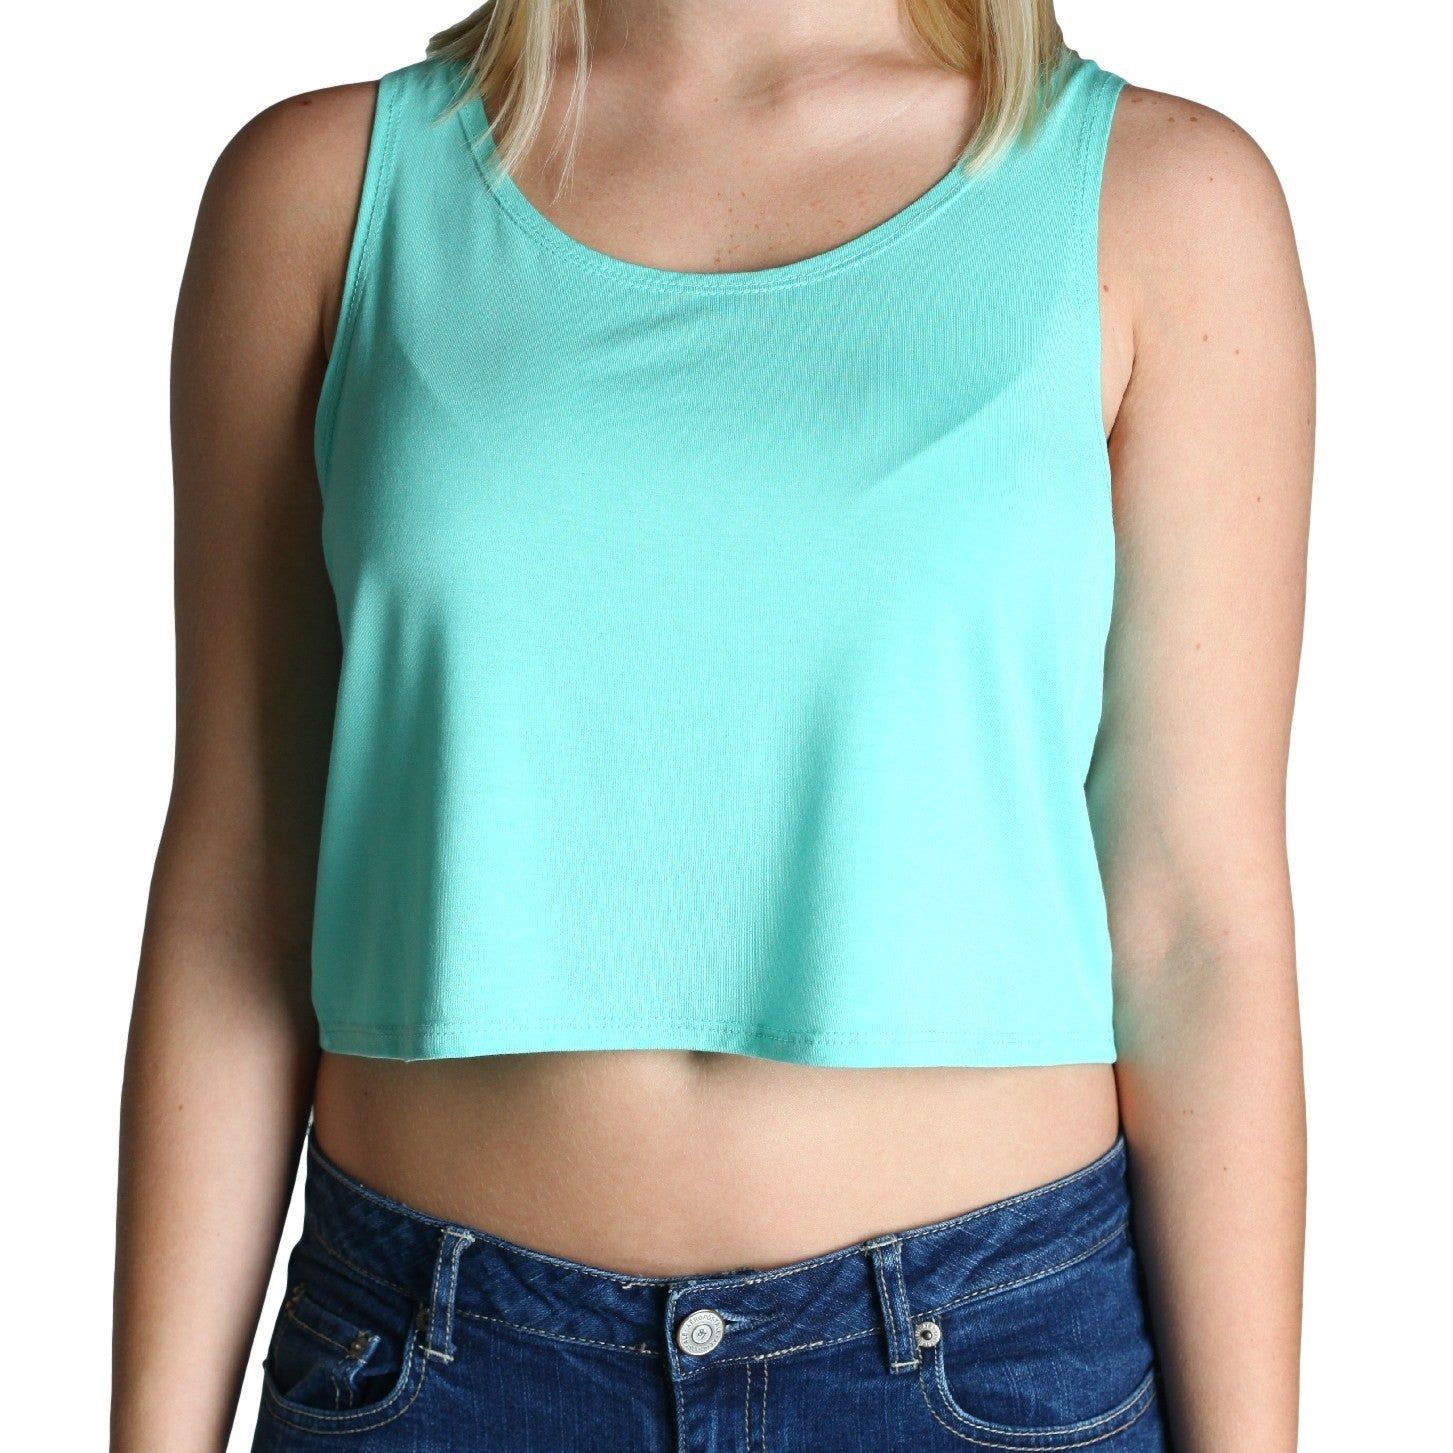 Lucite Green Piko Crop Top - Piko Clearance Center